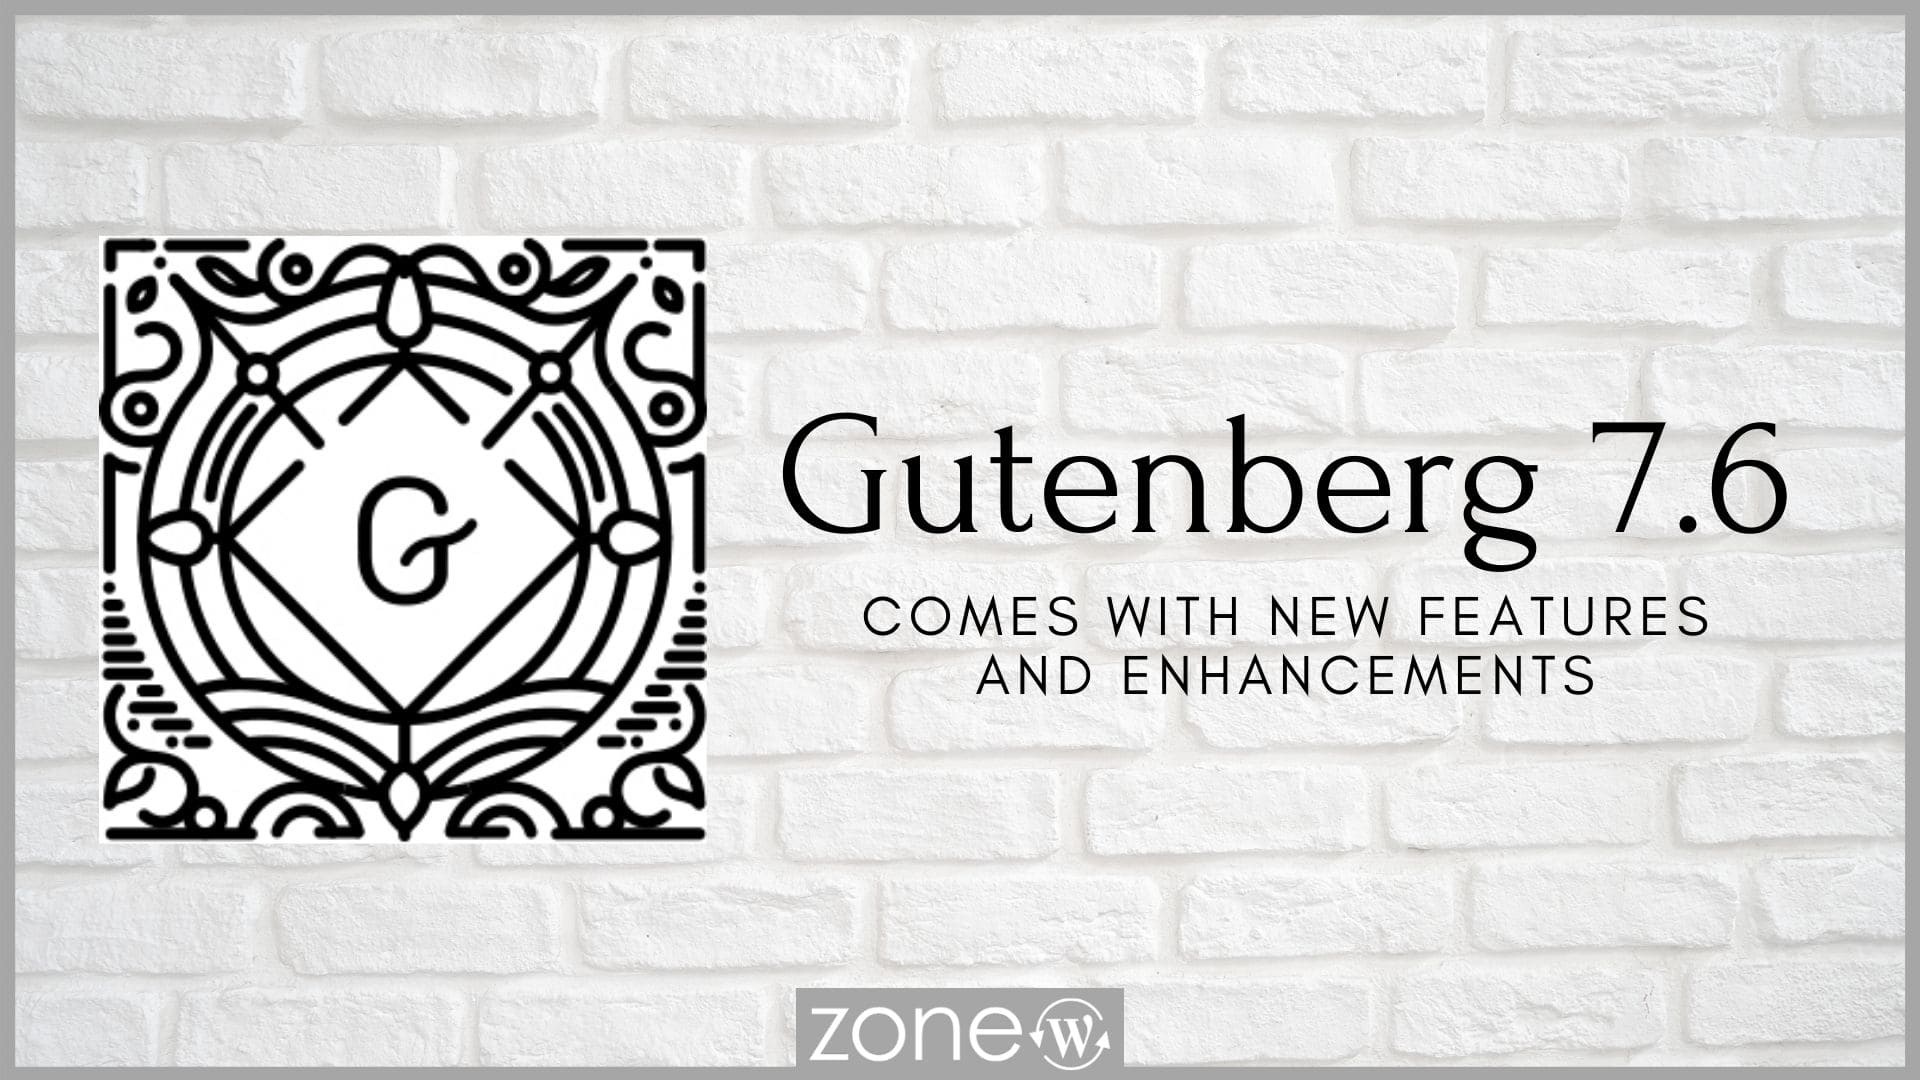 Gutenberg 7.6 Comes with New Features and Enhancements